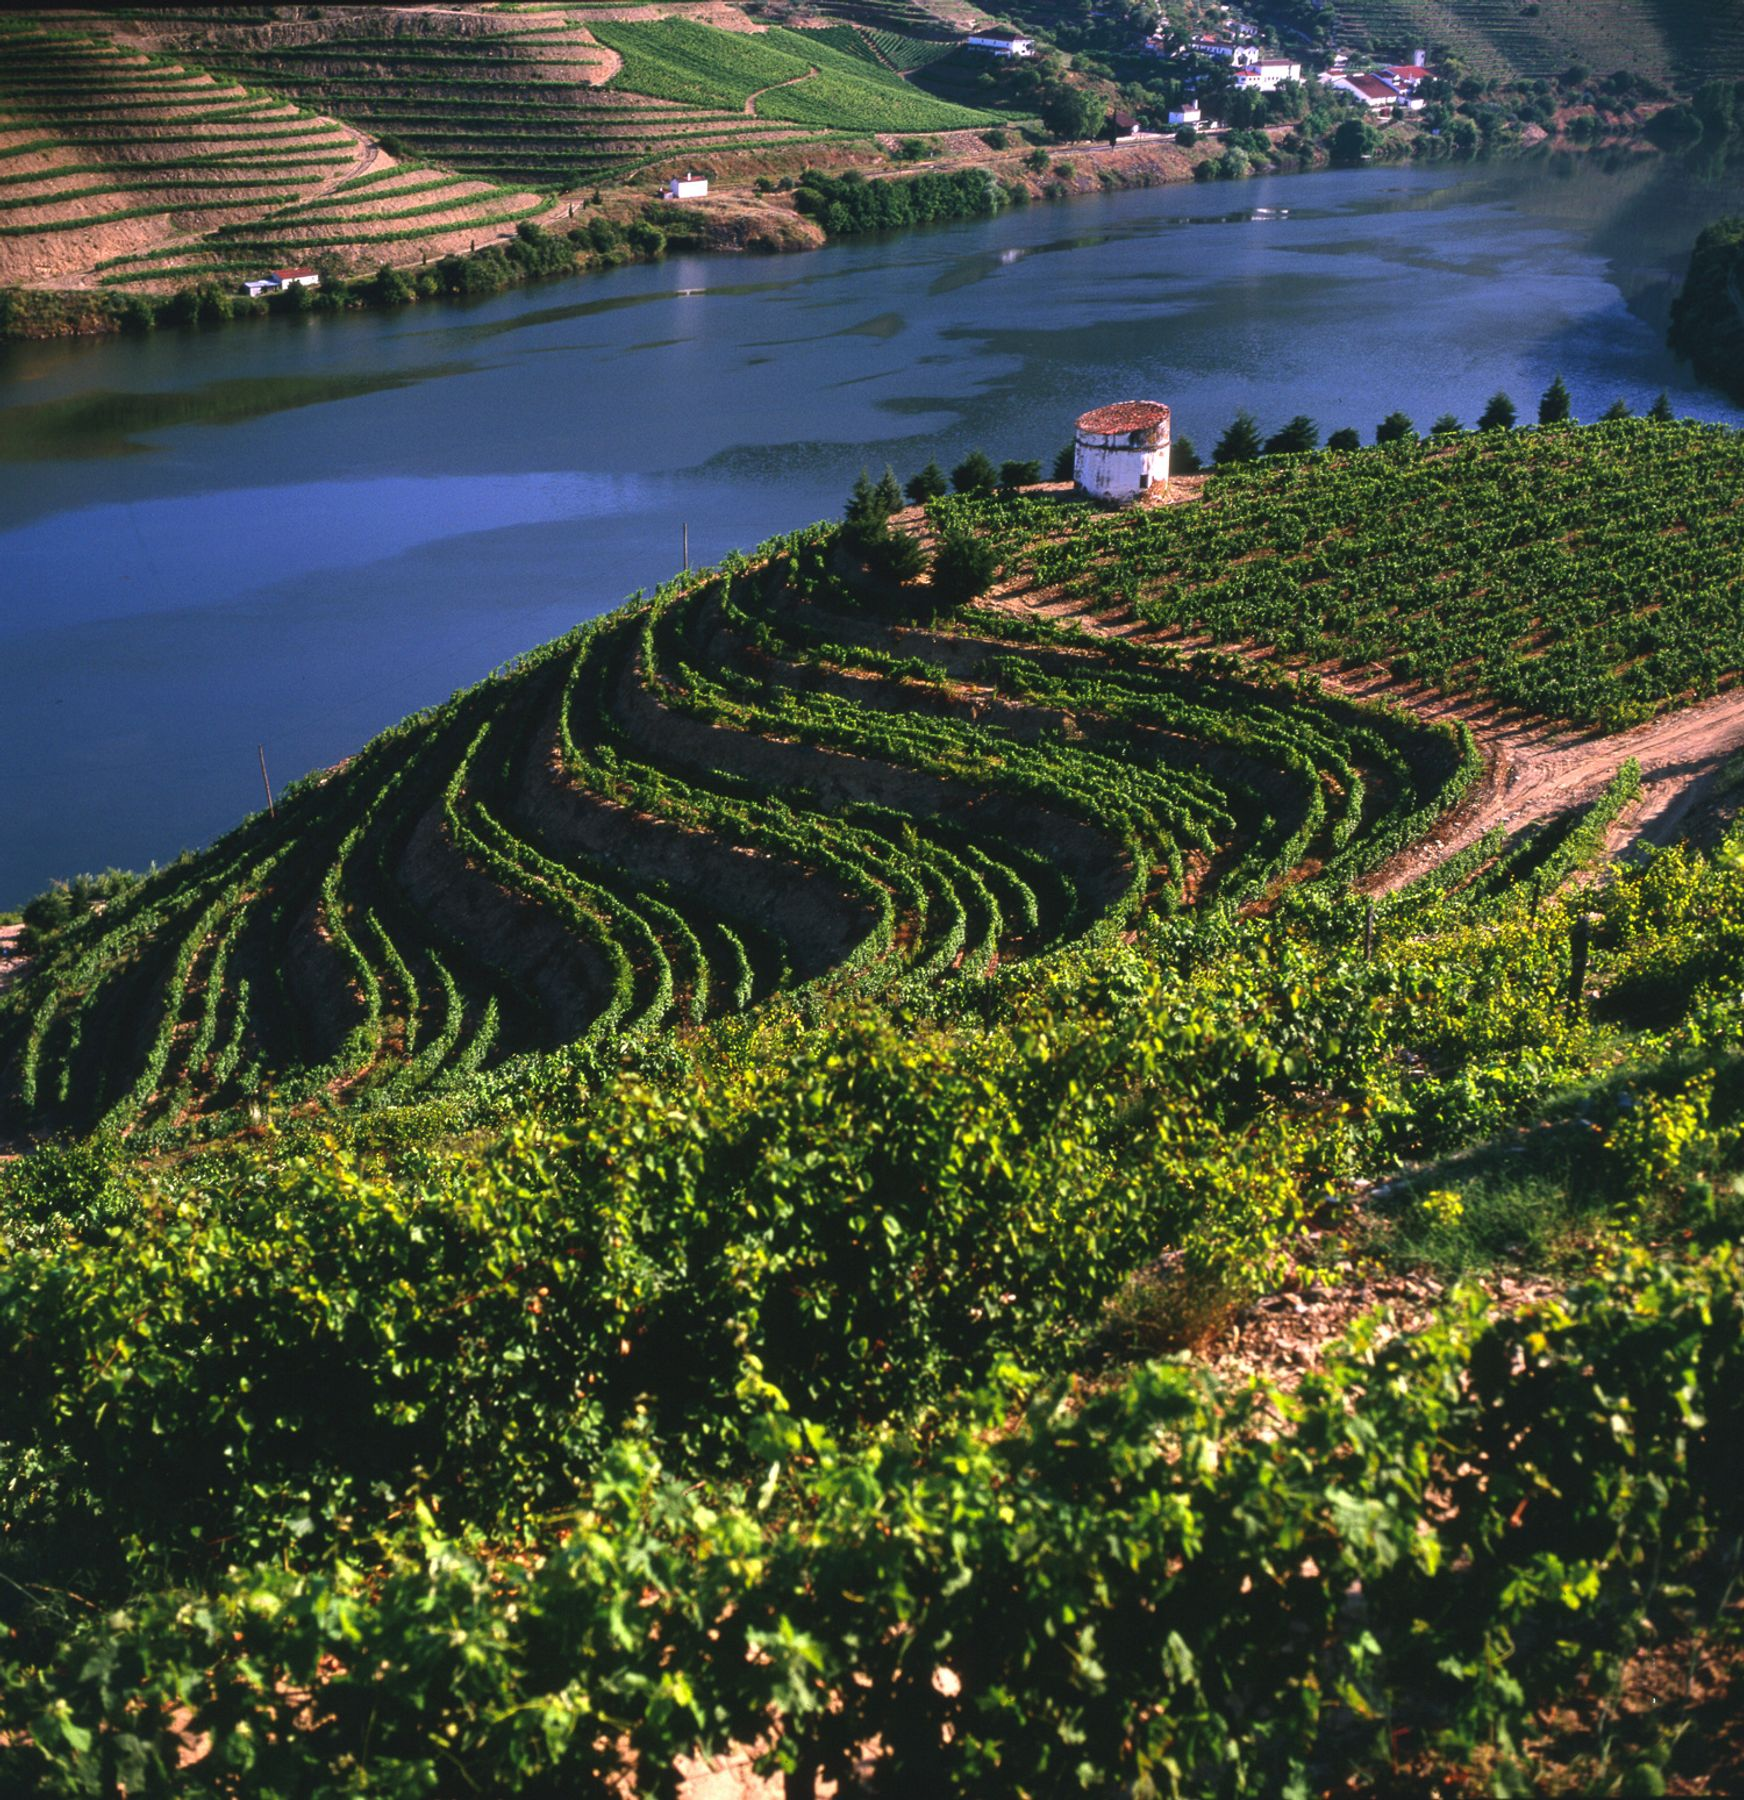 Located some distance upstream from Porto, the Douro Valley is a Portuguese wine region centred on the Douro River and protected from coastal influence by mountain ranges. This region has Portugal's highest wine classification as a Denominação de Origem Controlada (DOC).